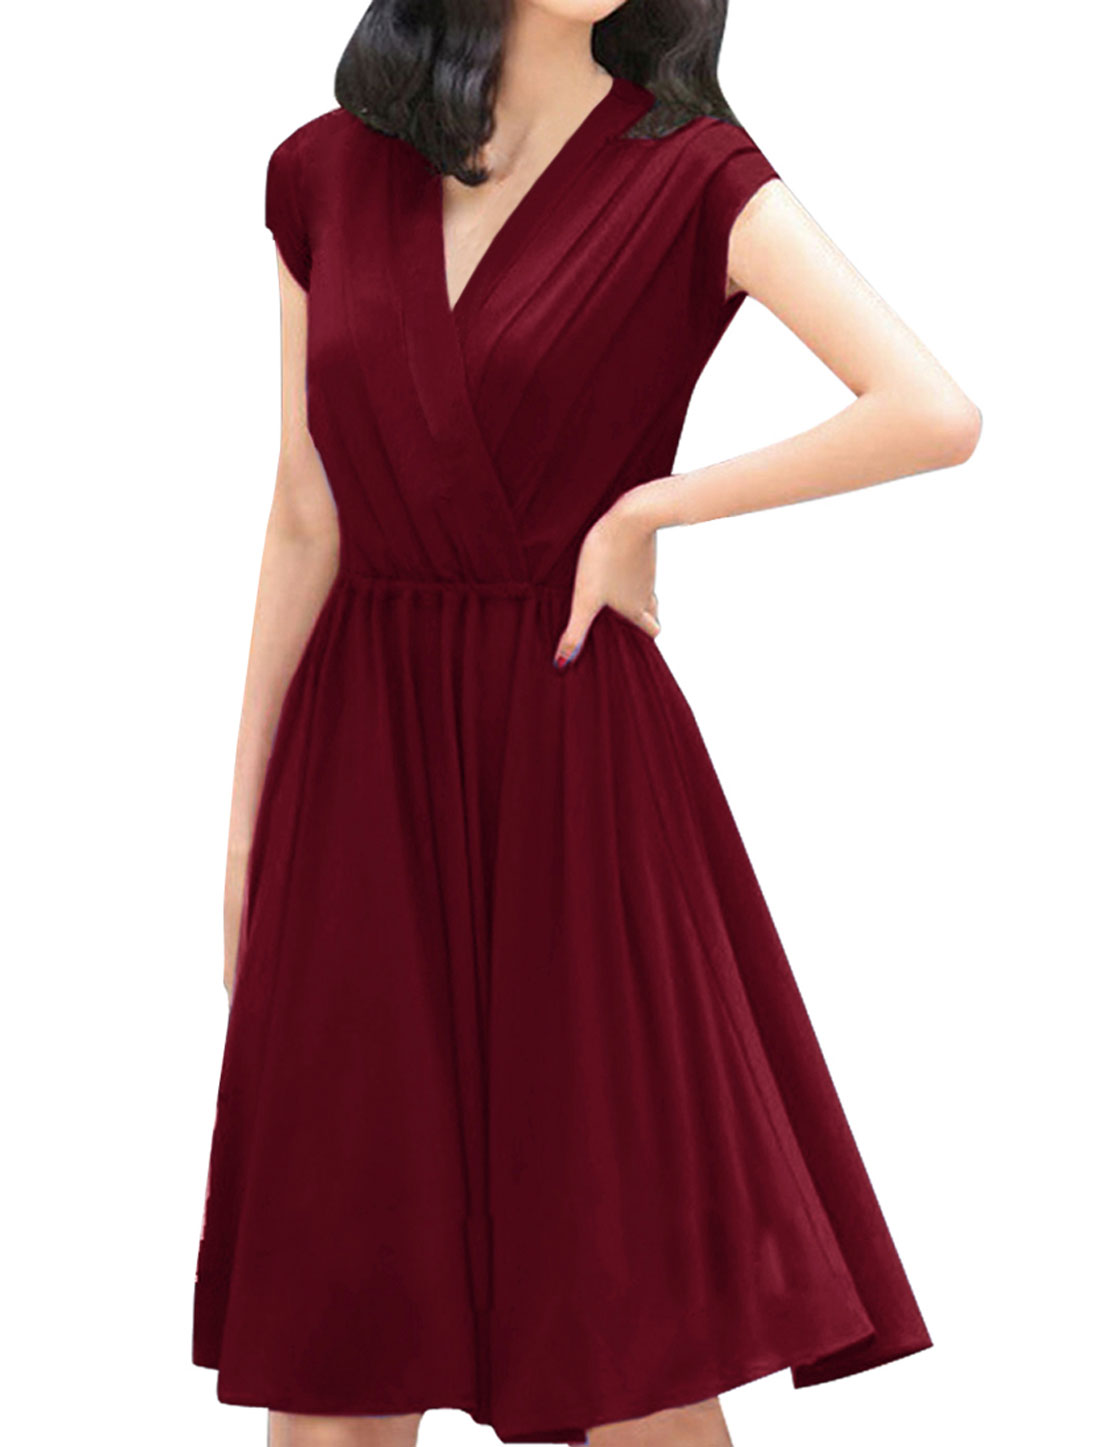 Crossover Deep V Neck Burgundy Dress S for Ladies